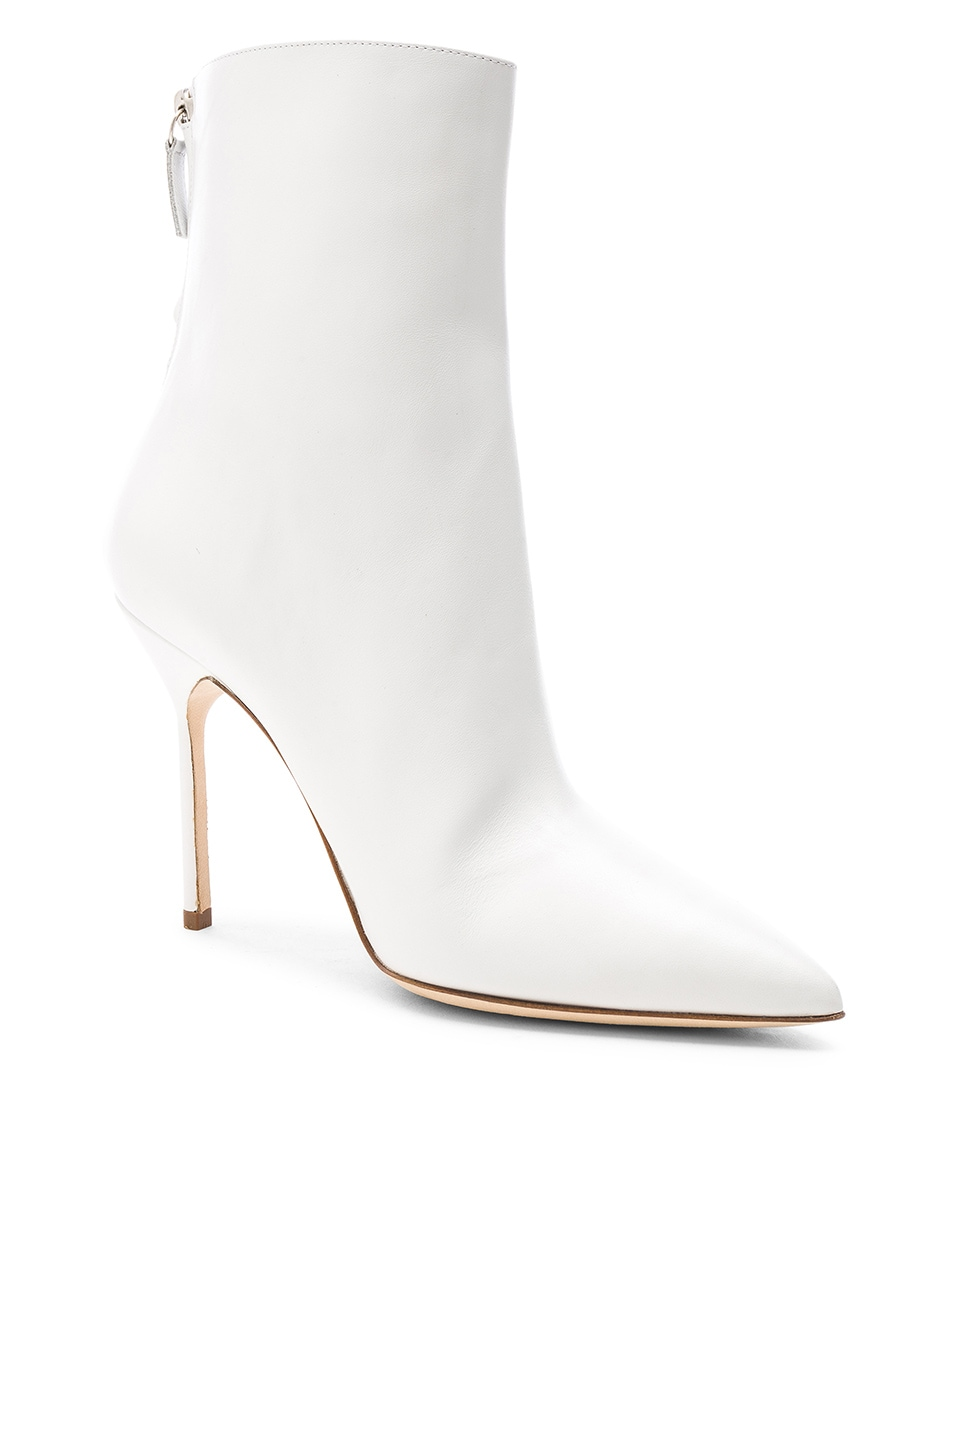 Image 2 of Manolo Blahnik Leather Zarinanu 105 Boots in White